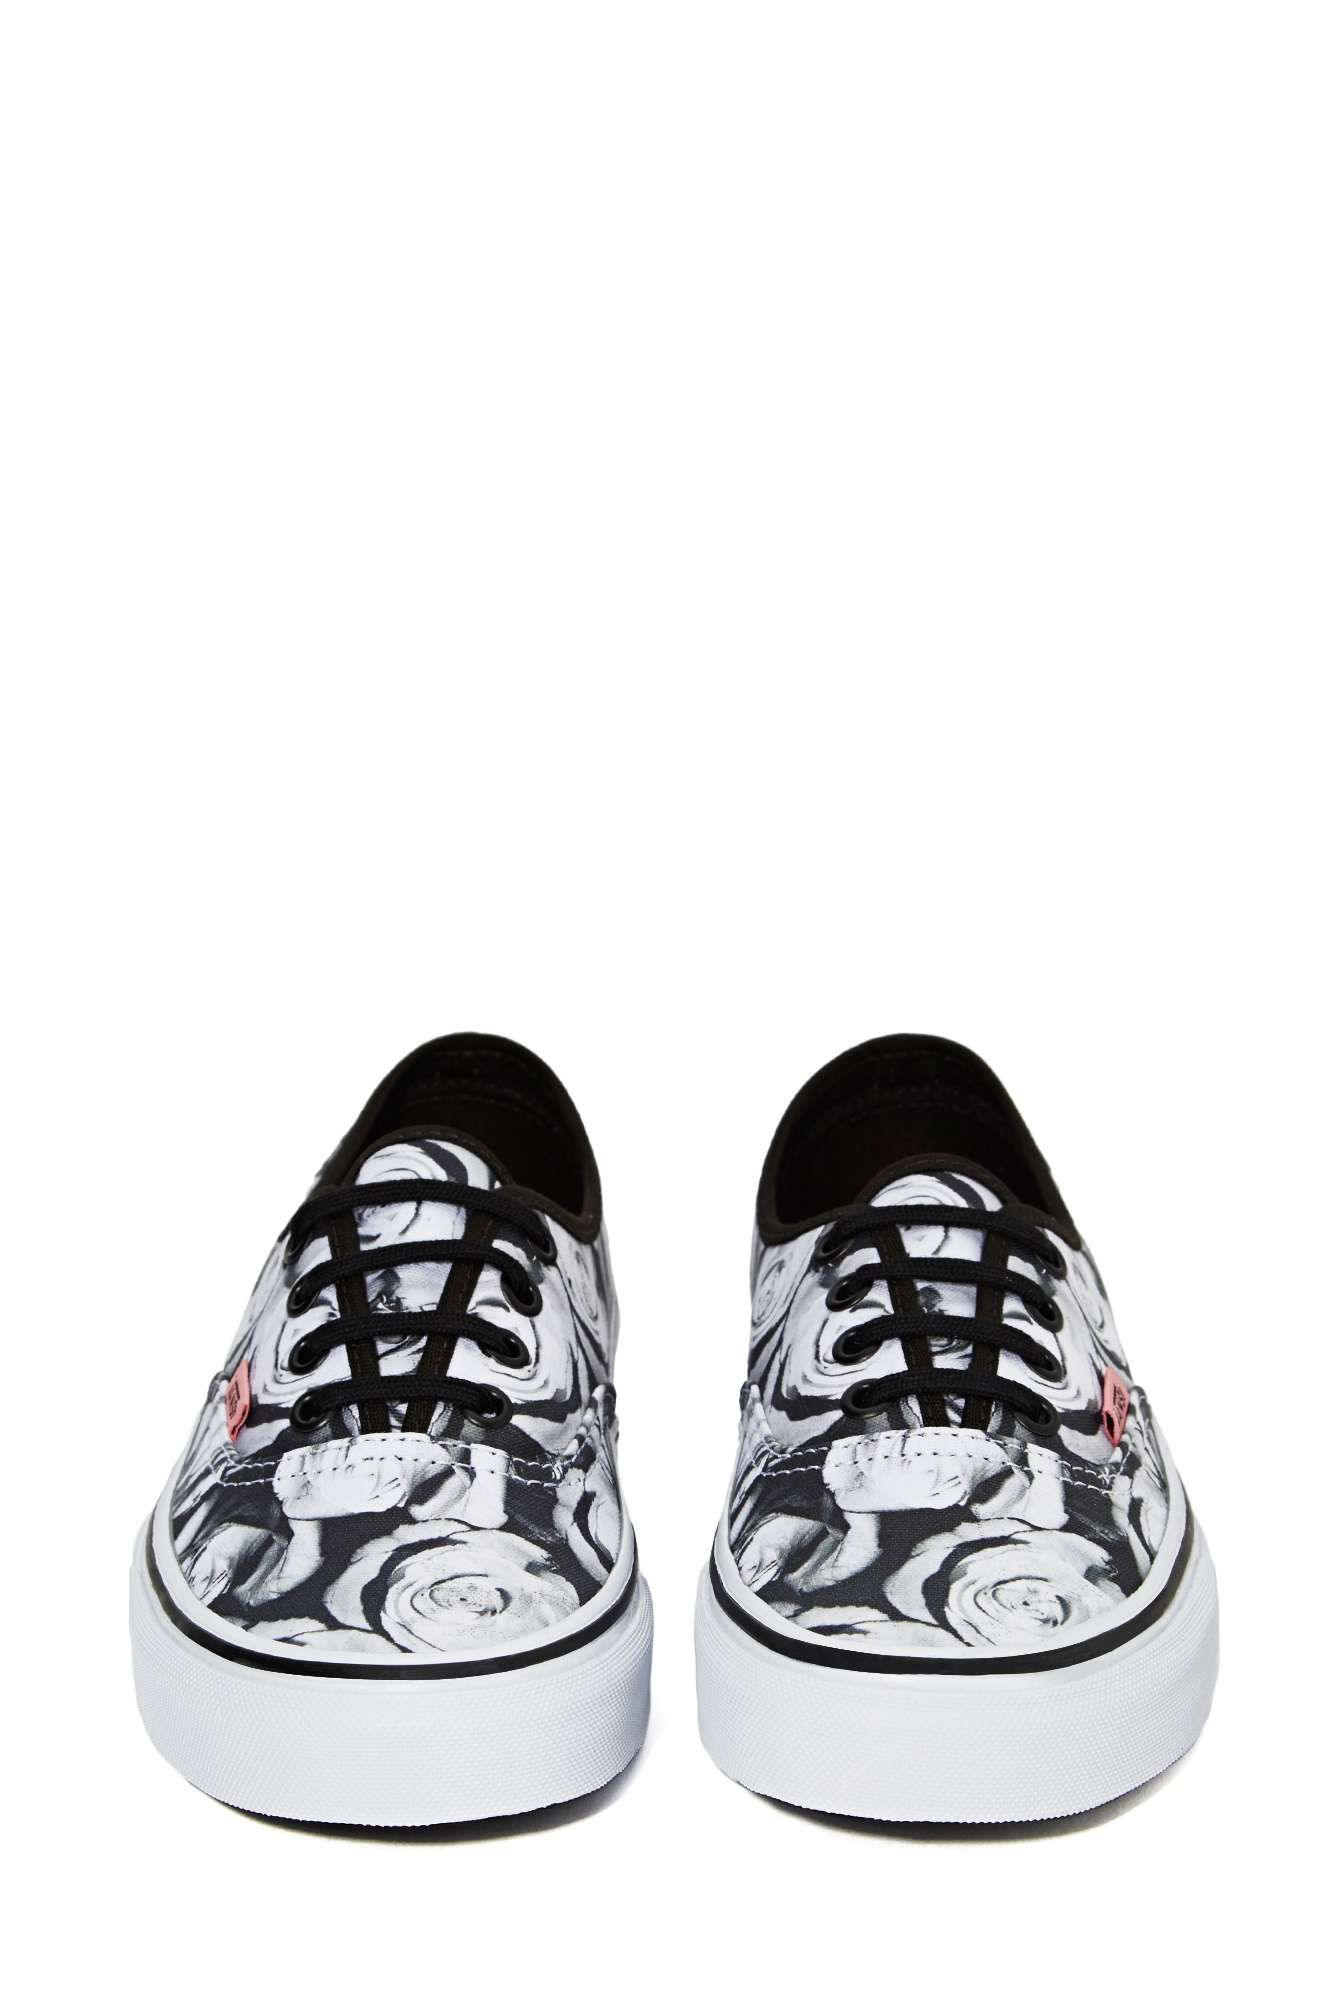 7264f6ba0c Vans Authentic Sneaker - Digi Rose